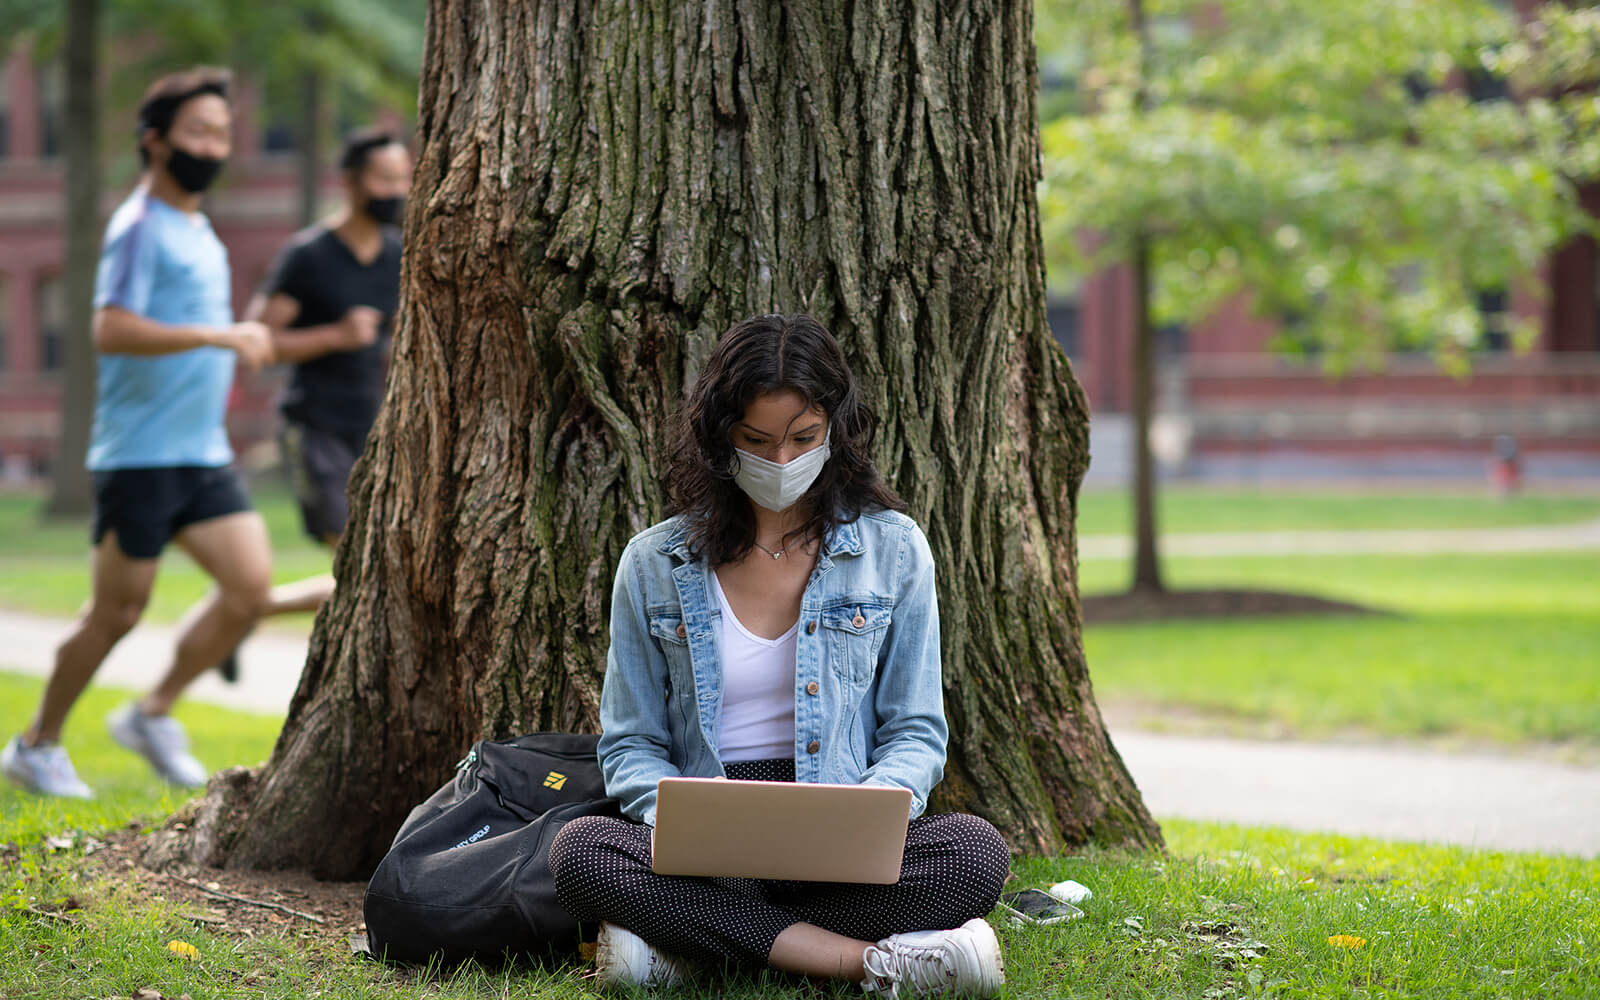 Harvard freshman, and CollegePoint Alumna, Penelope Alegria catches up on her work on the lawn in Harvard Yard